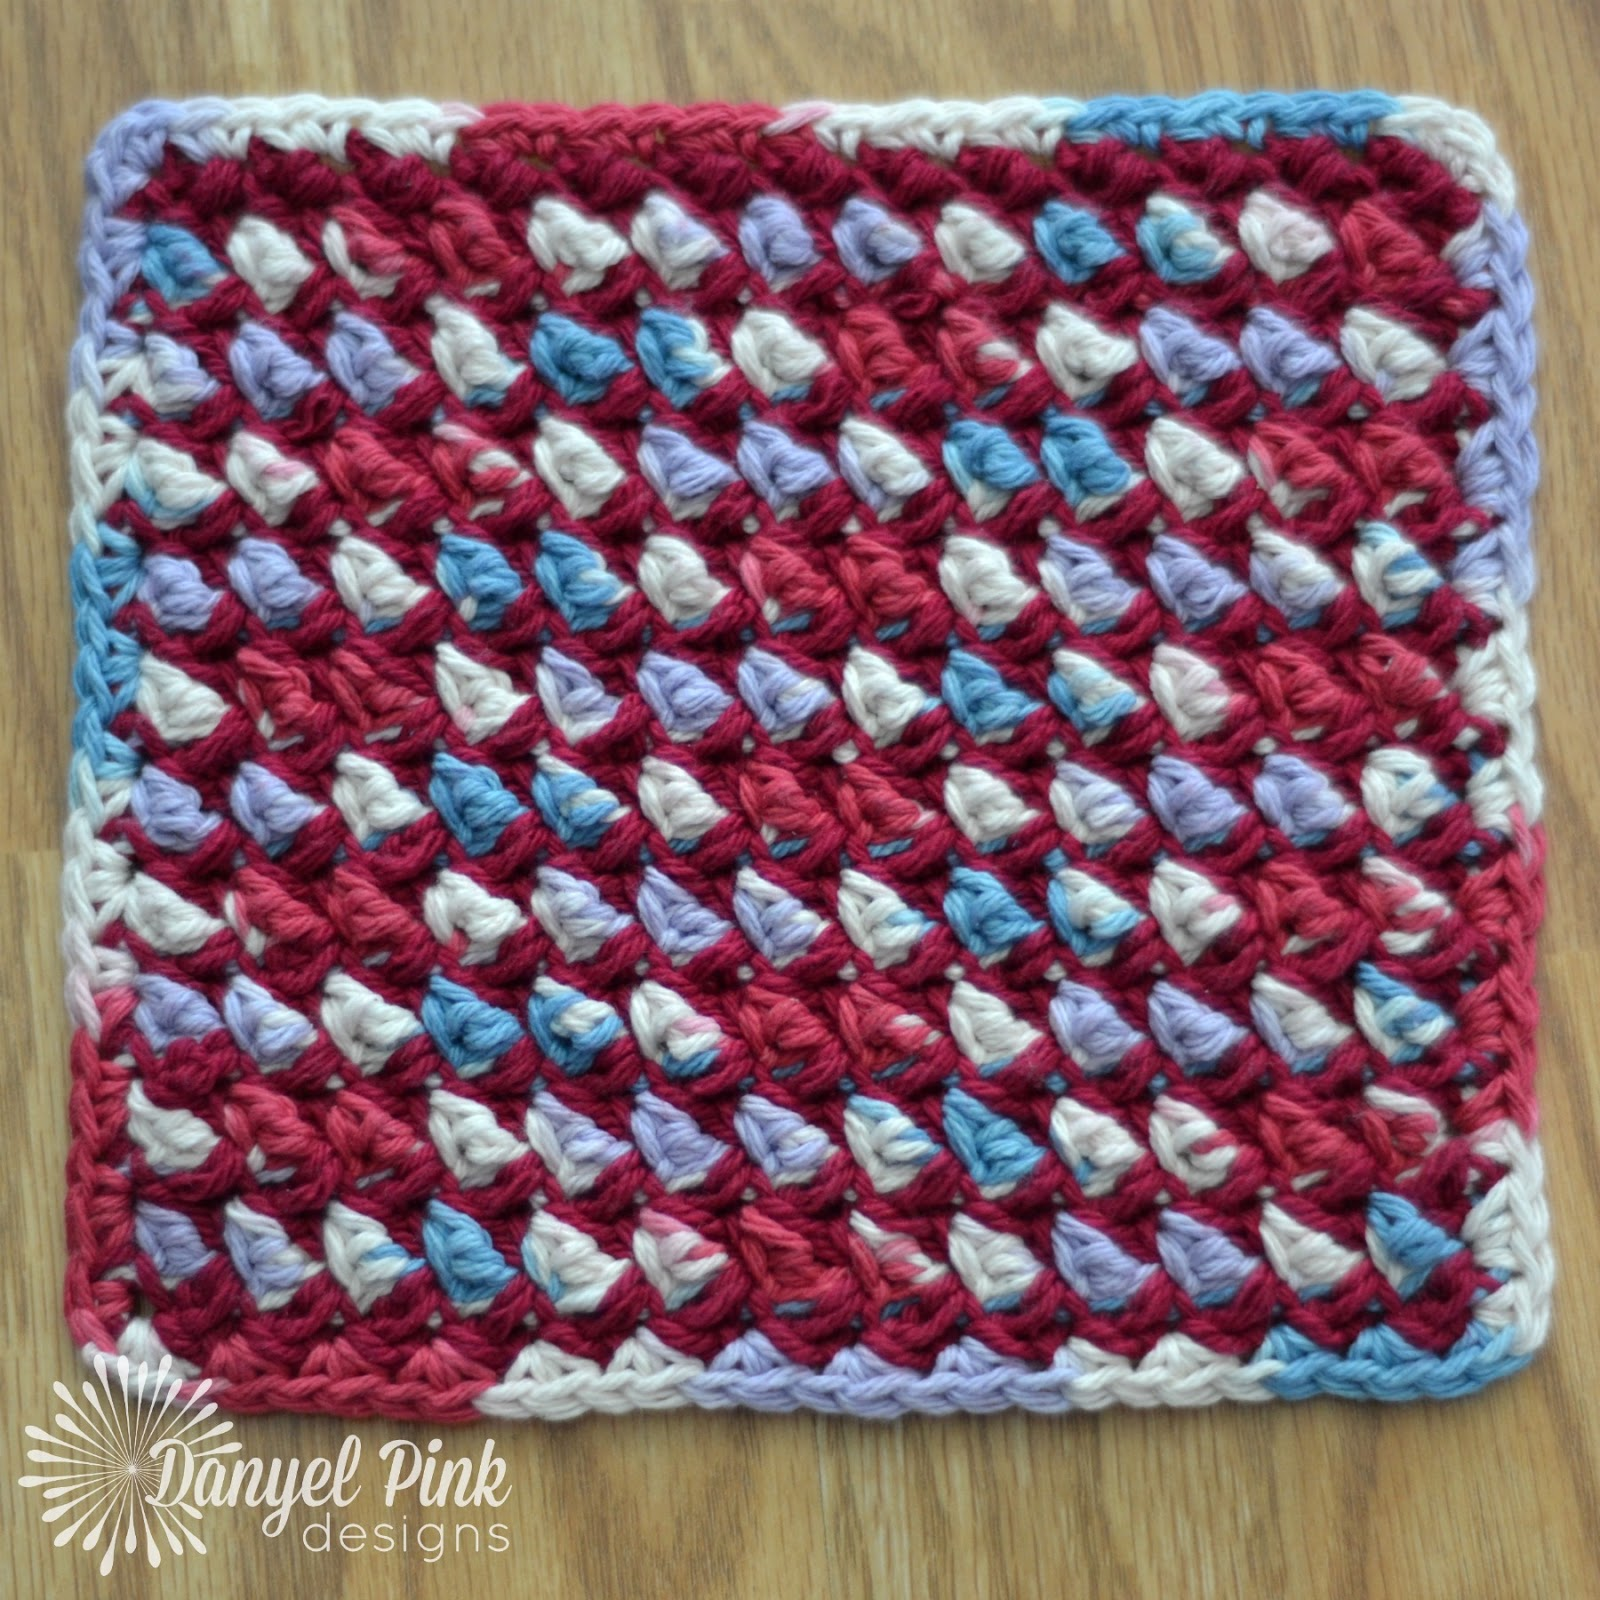 Danyel Pink Designs: CROCHET PATTERN - Coastline Cloth